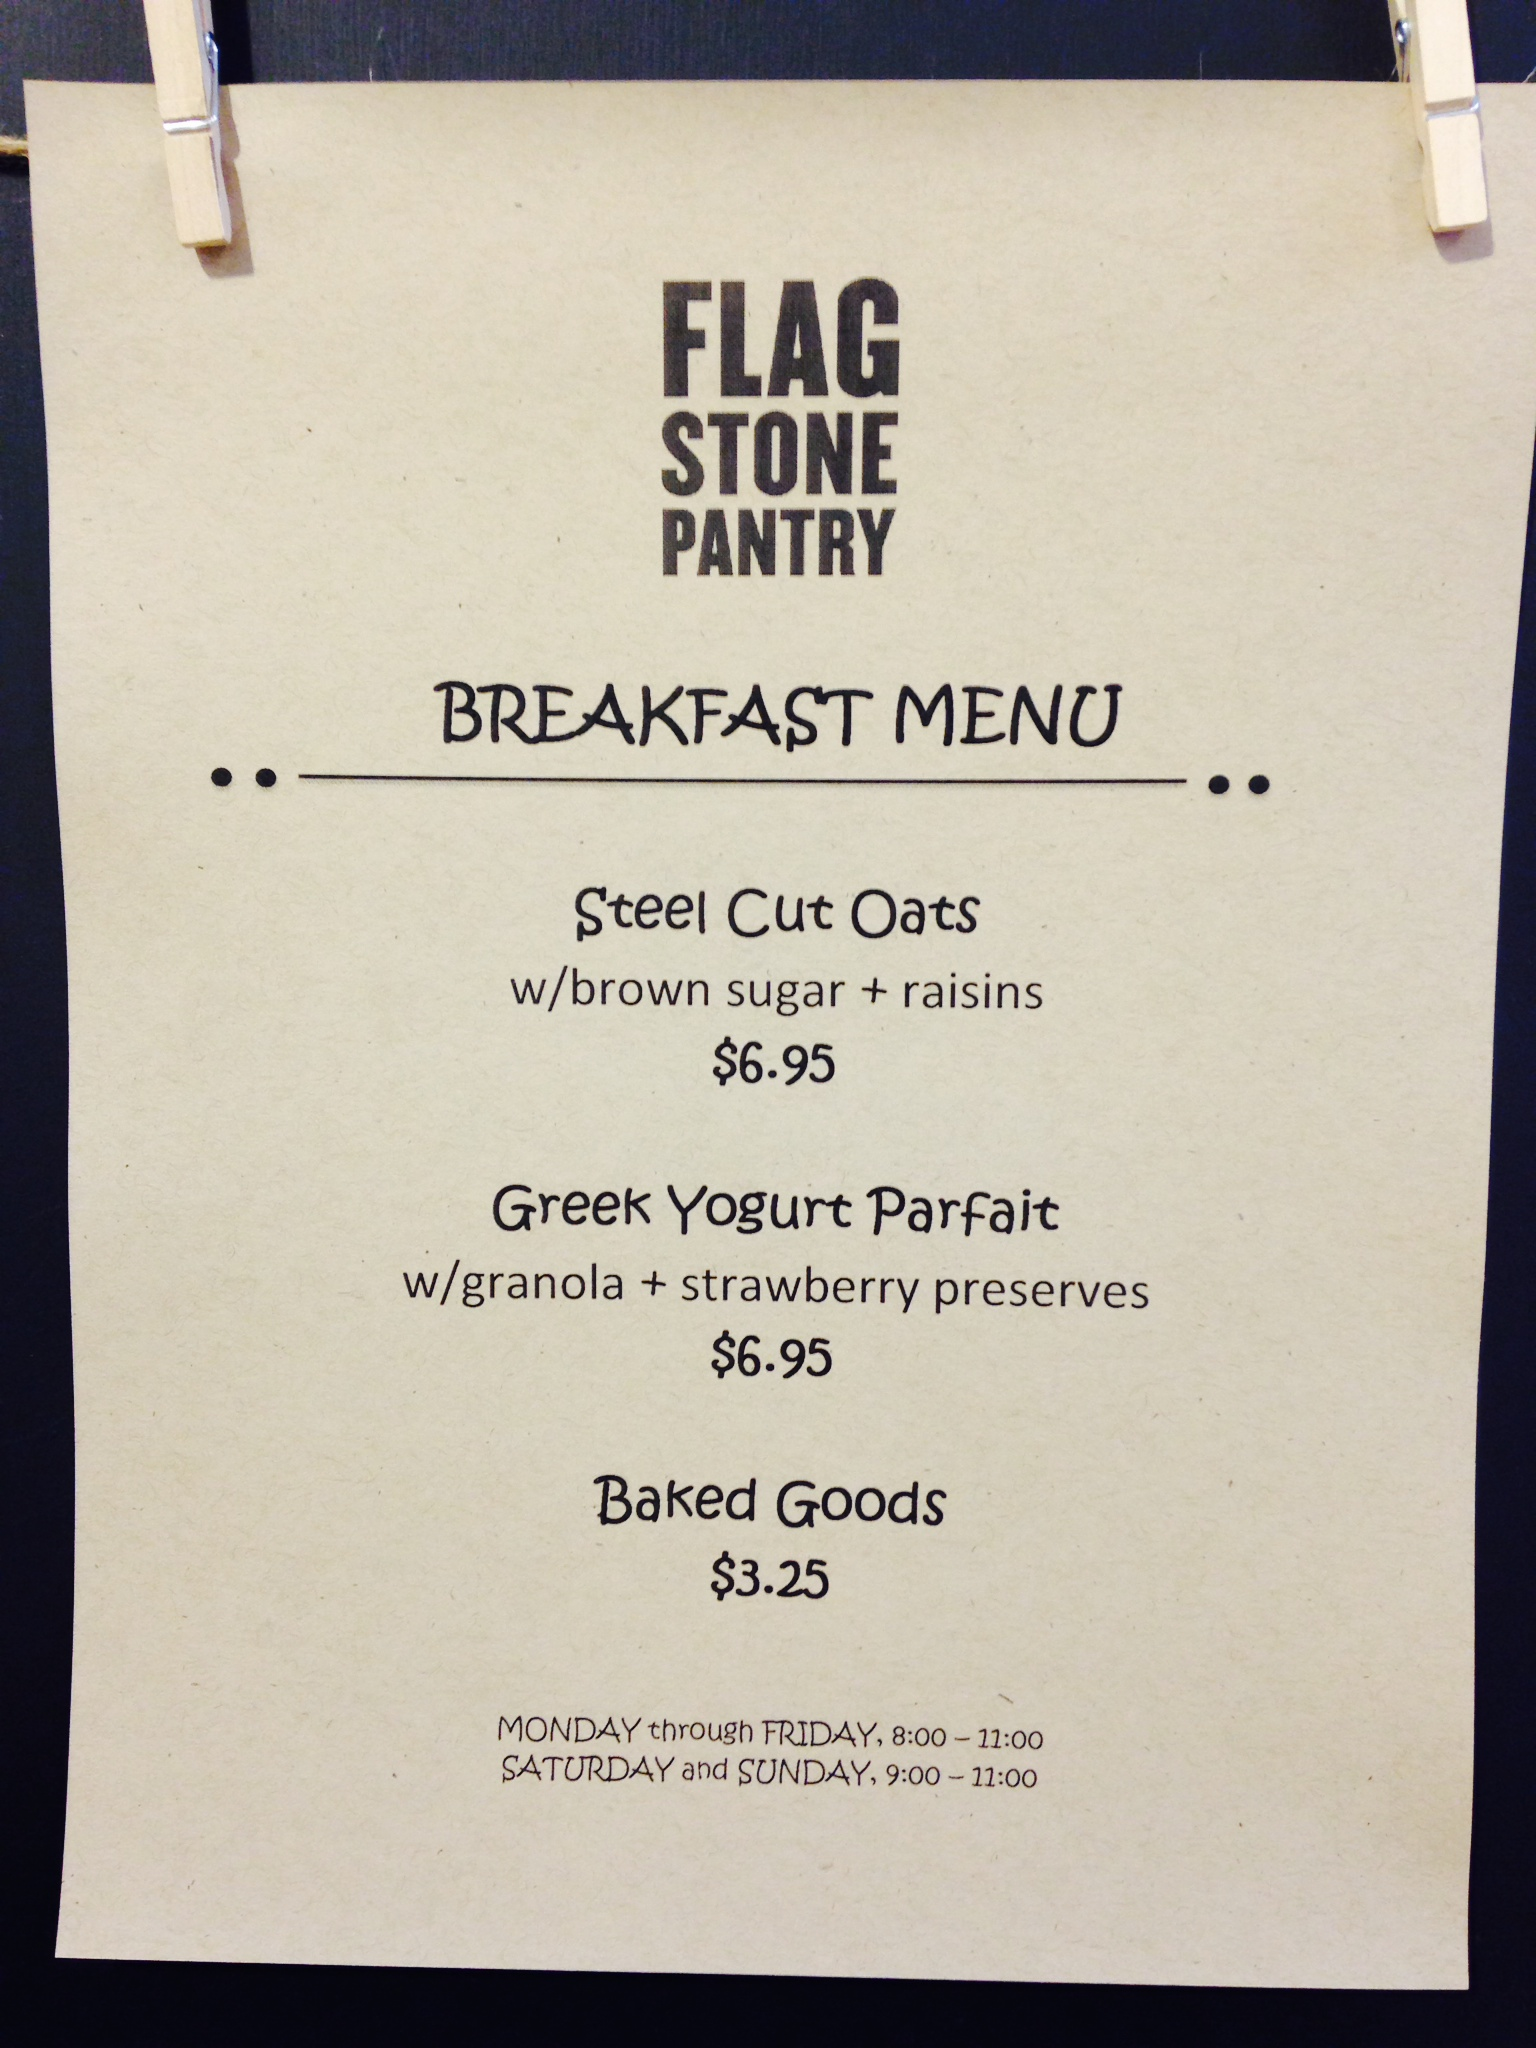 Breakfast Menu Flagstone Pantry